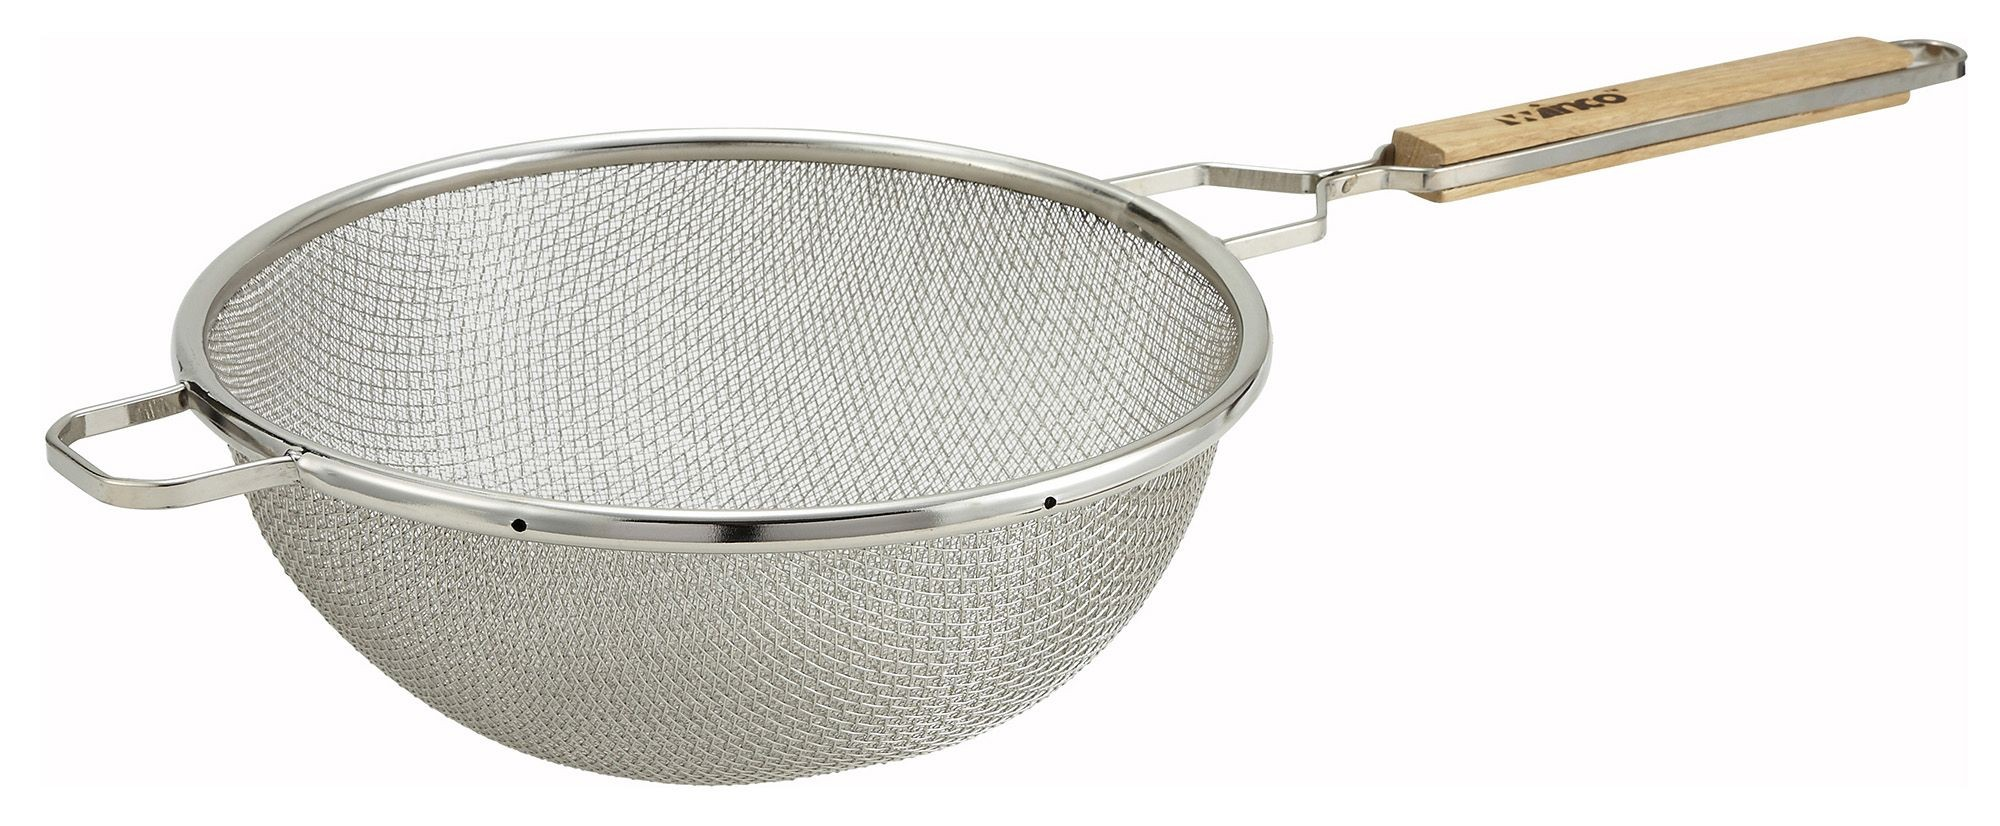 Double Tinned Mesh Medium Strainer With Wood Handle - 10-1/2